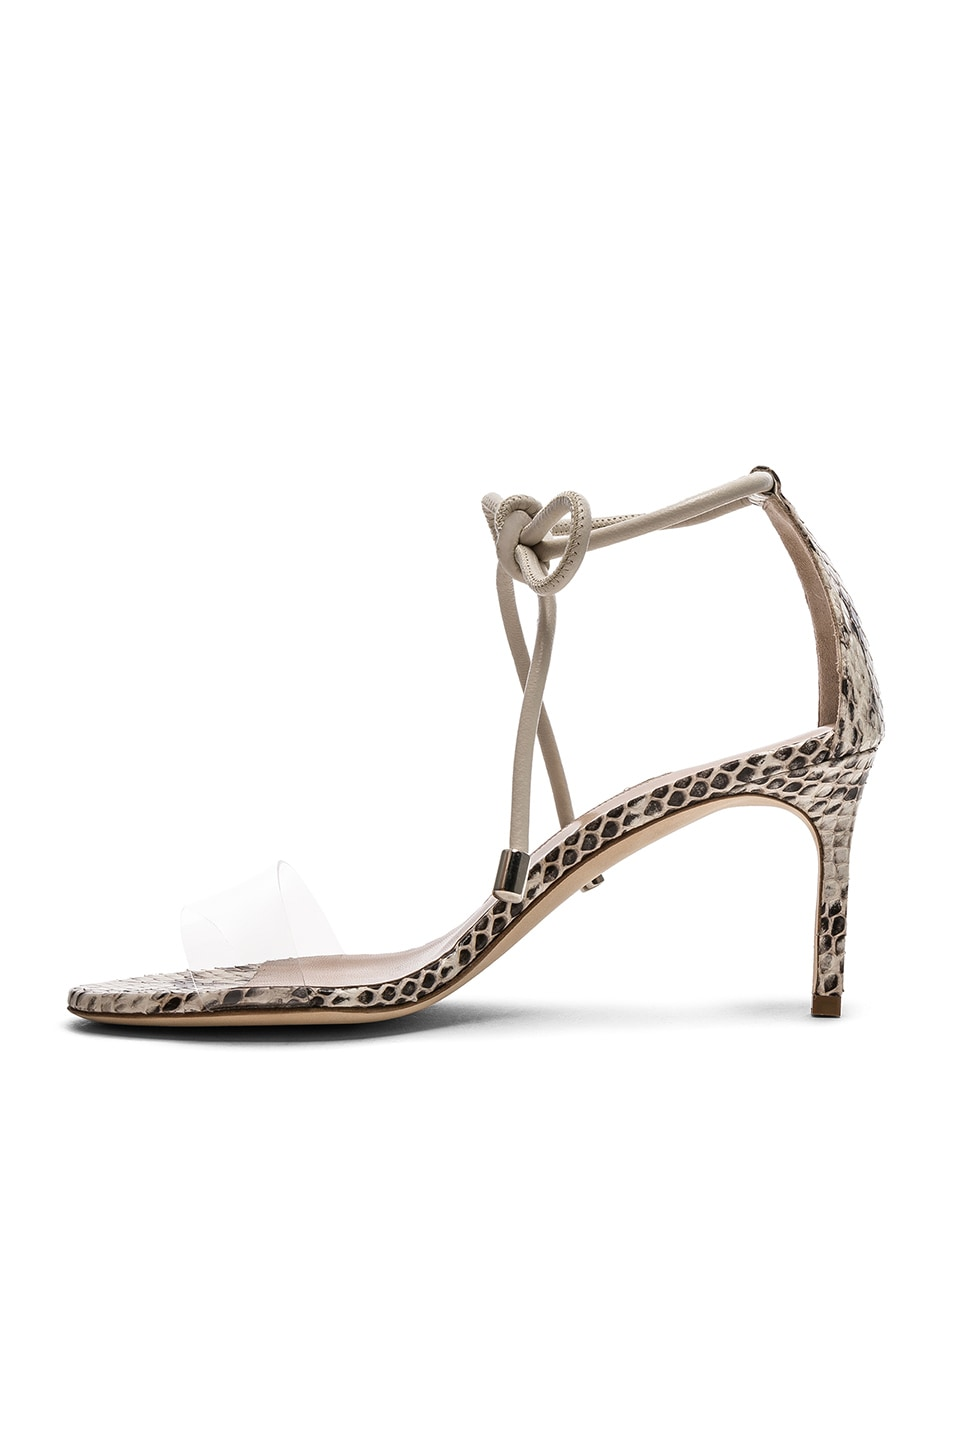 Image 5 of Manolo Blahnik Estro 70 Sandals in White & Black Natural Watersnake